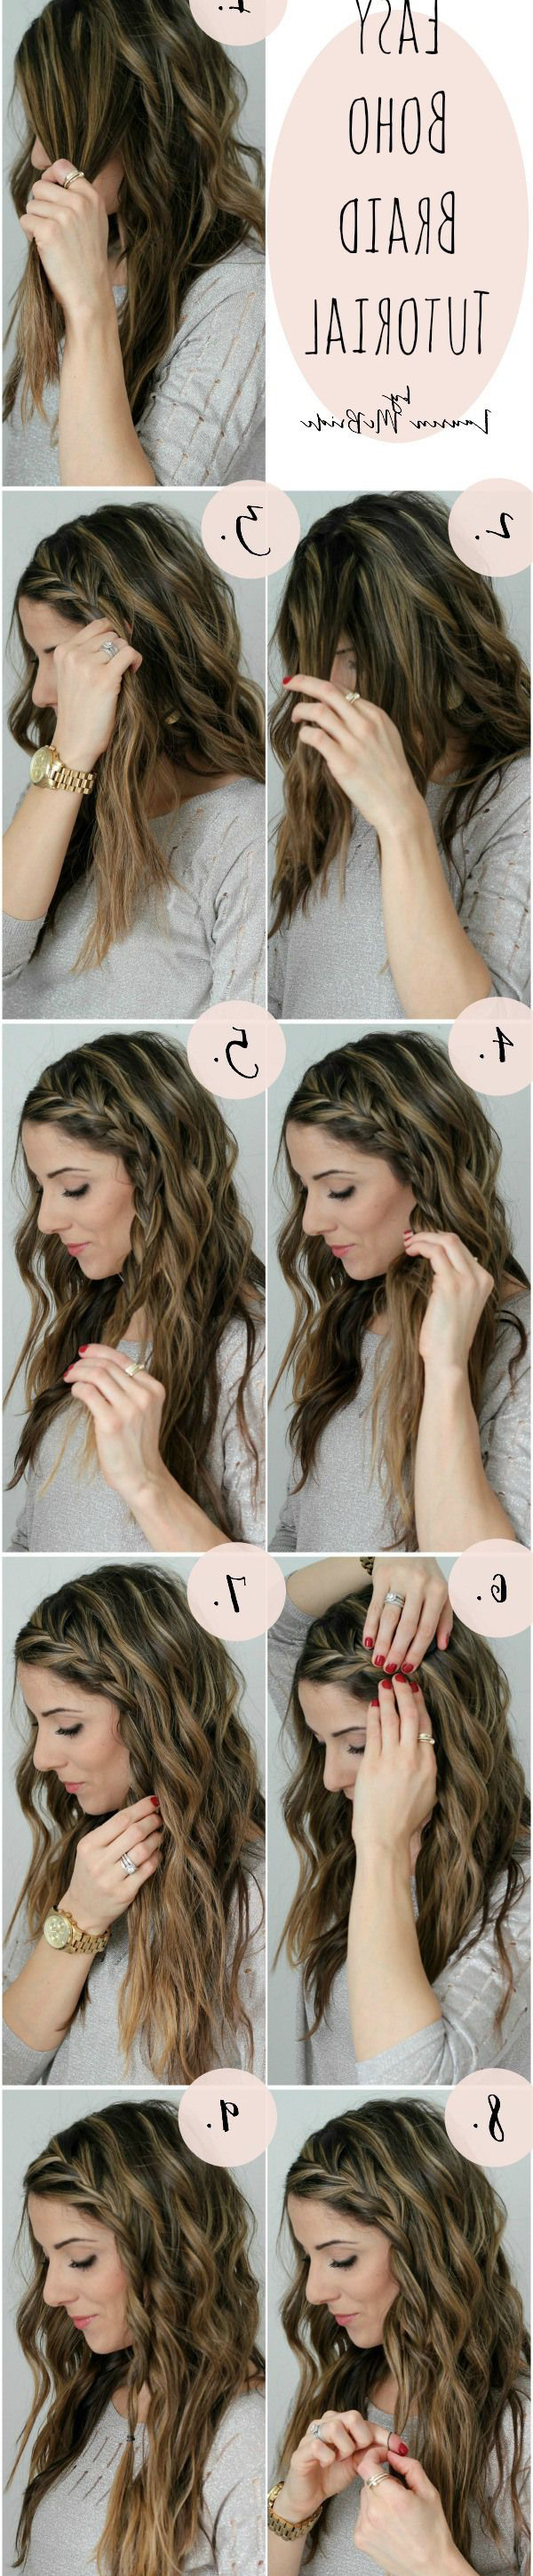 15 Simple But Cute Graduation Hairstyles To Wear Under Your Cap Intended For Graduation Short Hairstyles (View 4 of 25)